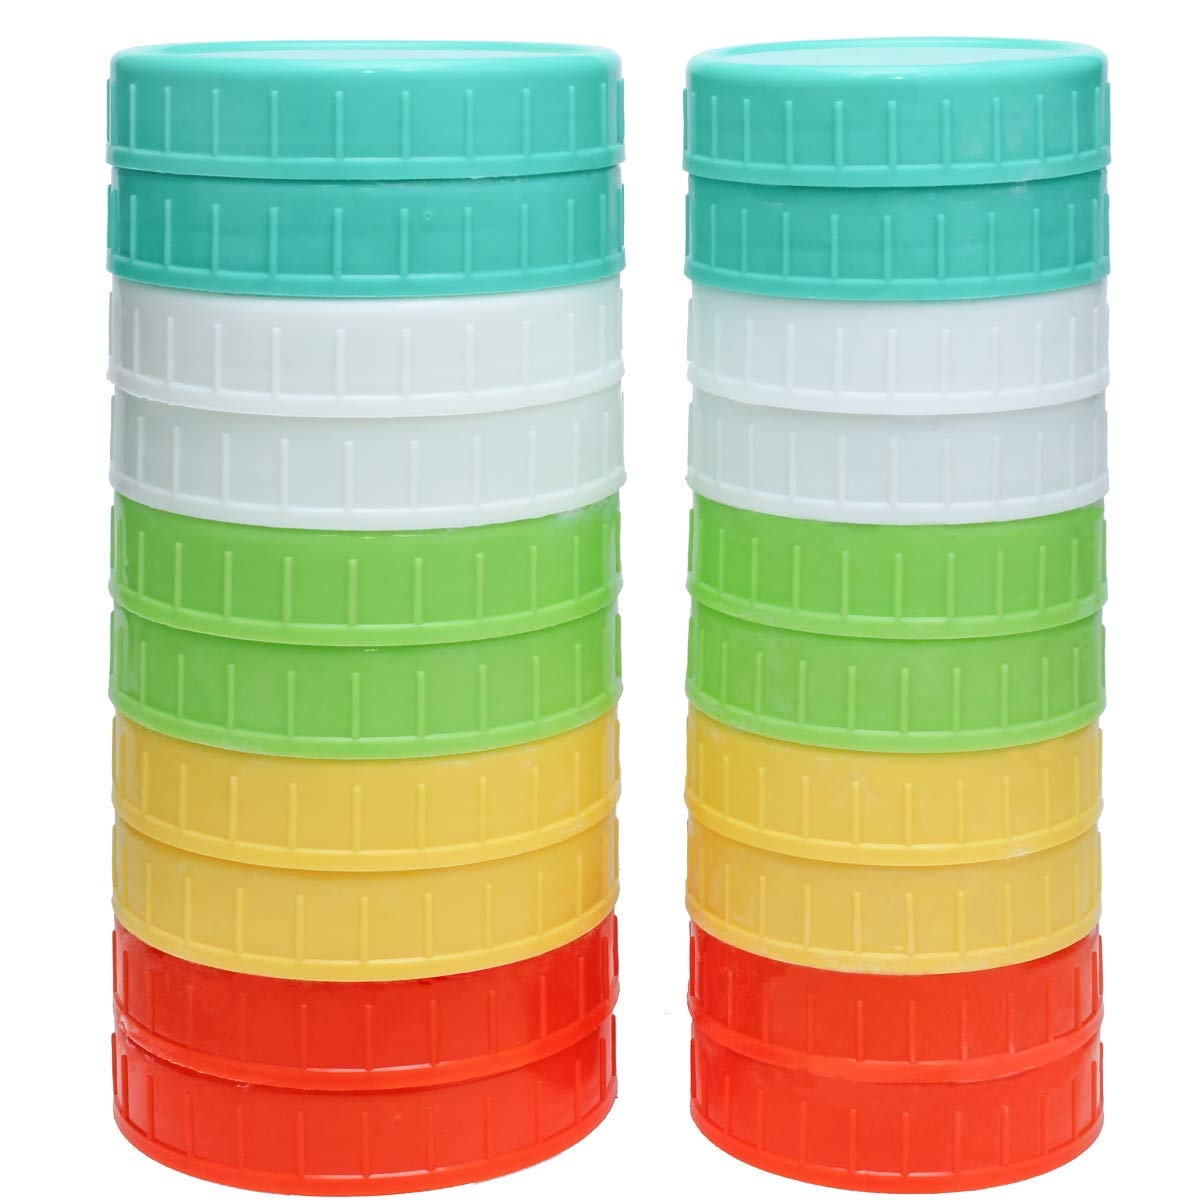 Mason Jar Plastic Lids for Regular Mouth and Wide Mouth for Storage Colored 20 Pack by FYYZY